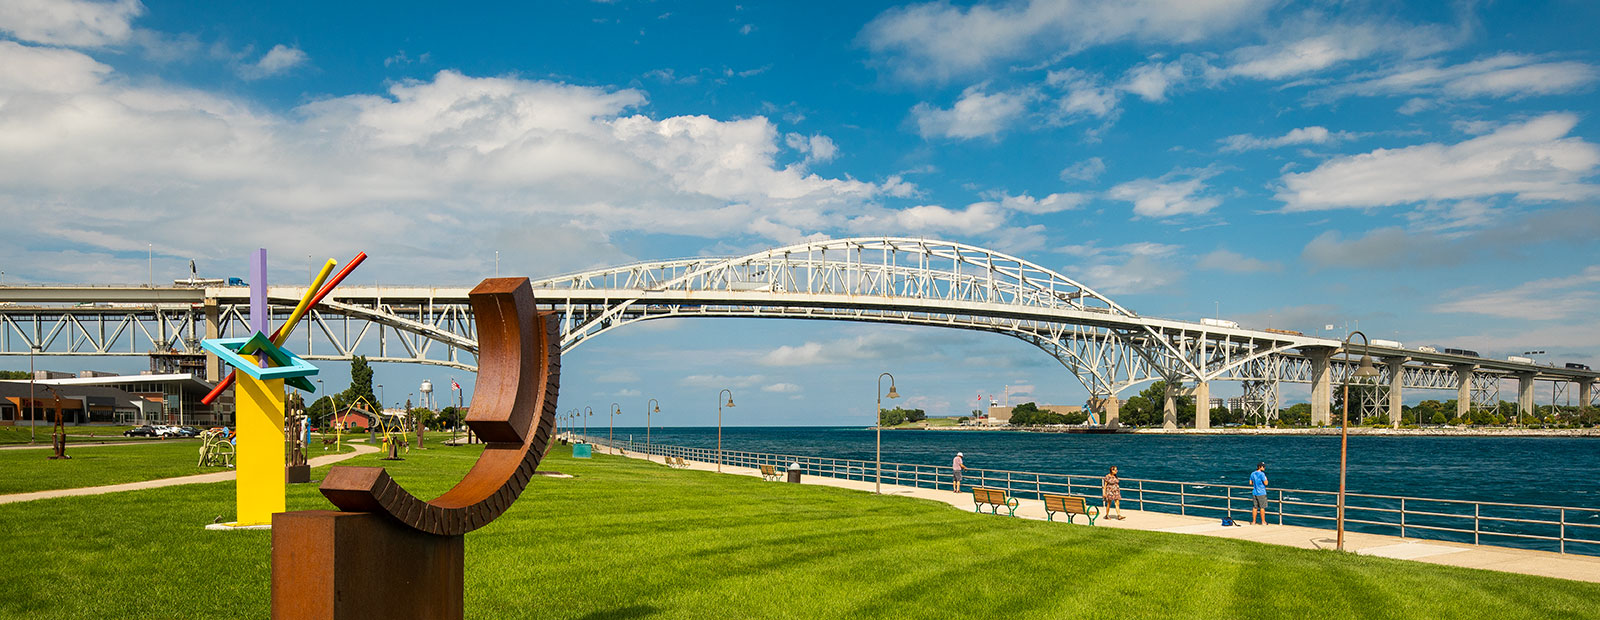 Beautiful blue skies and water making Port Huron an inviting place to live, work and play. <span class='image-credits'>David Lewinski</span>